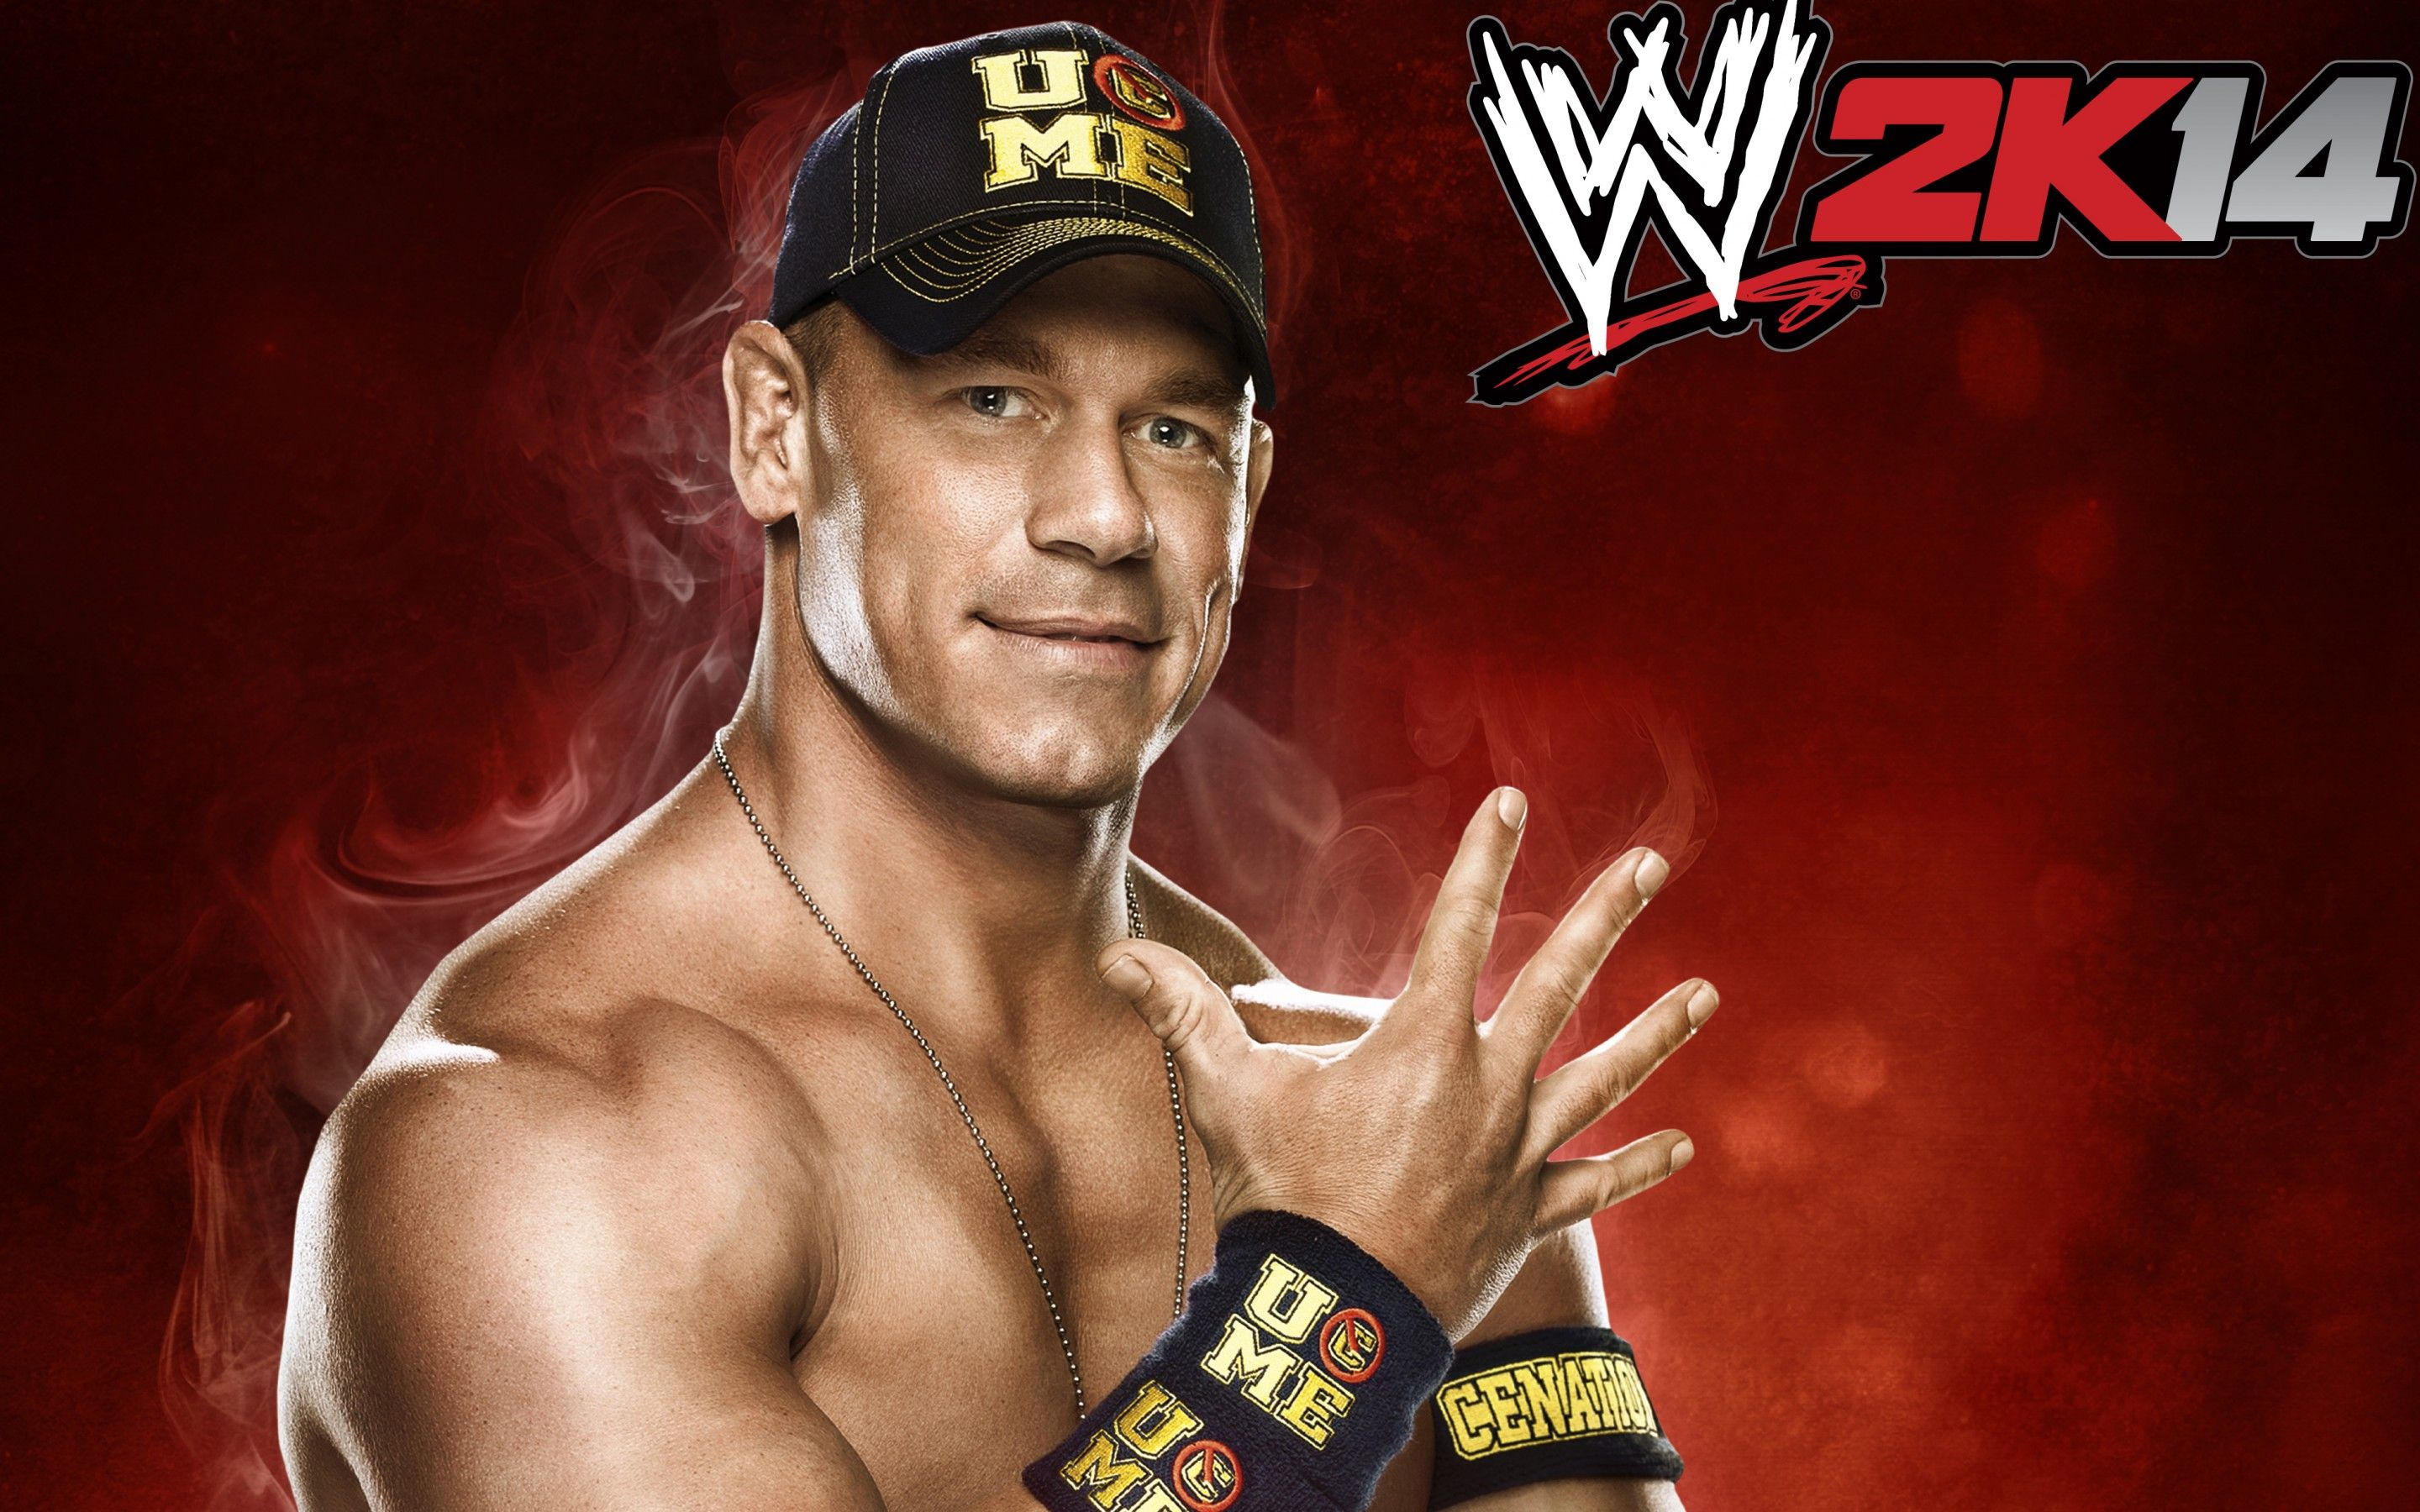 WWE Royal Rumble 2015 John Cena HD Wallpapers